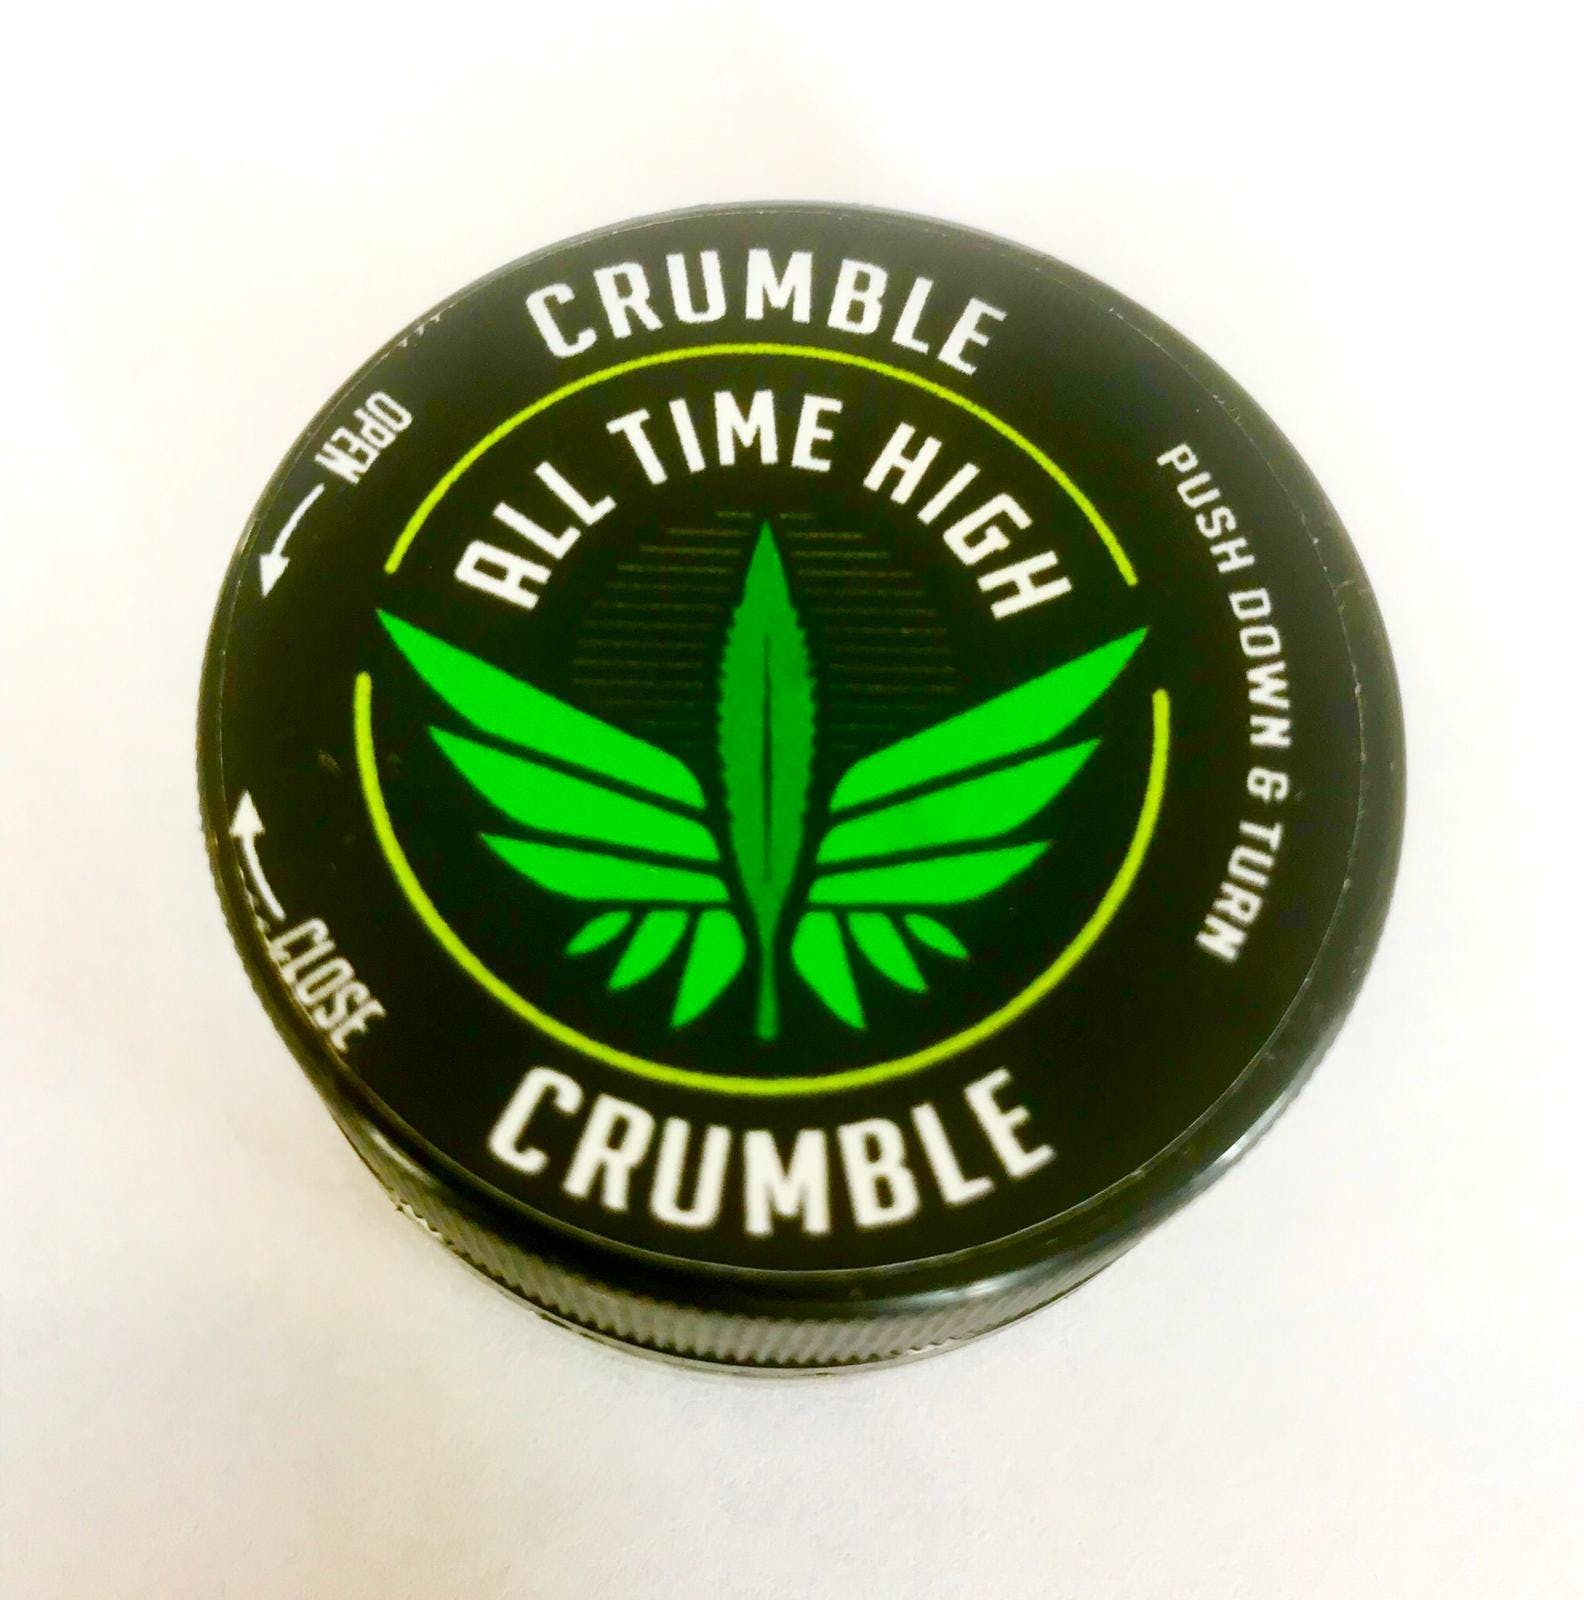 wax-all-time-high-crumble-5-for-120